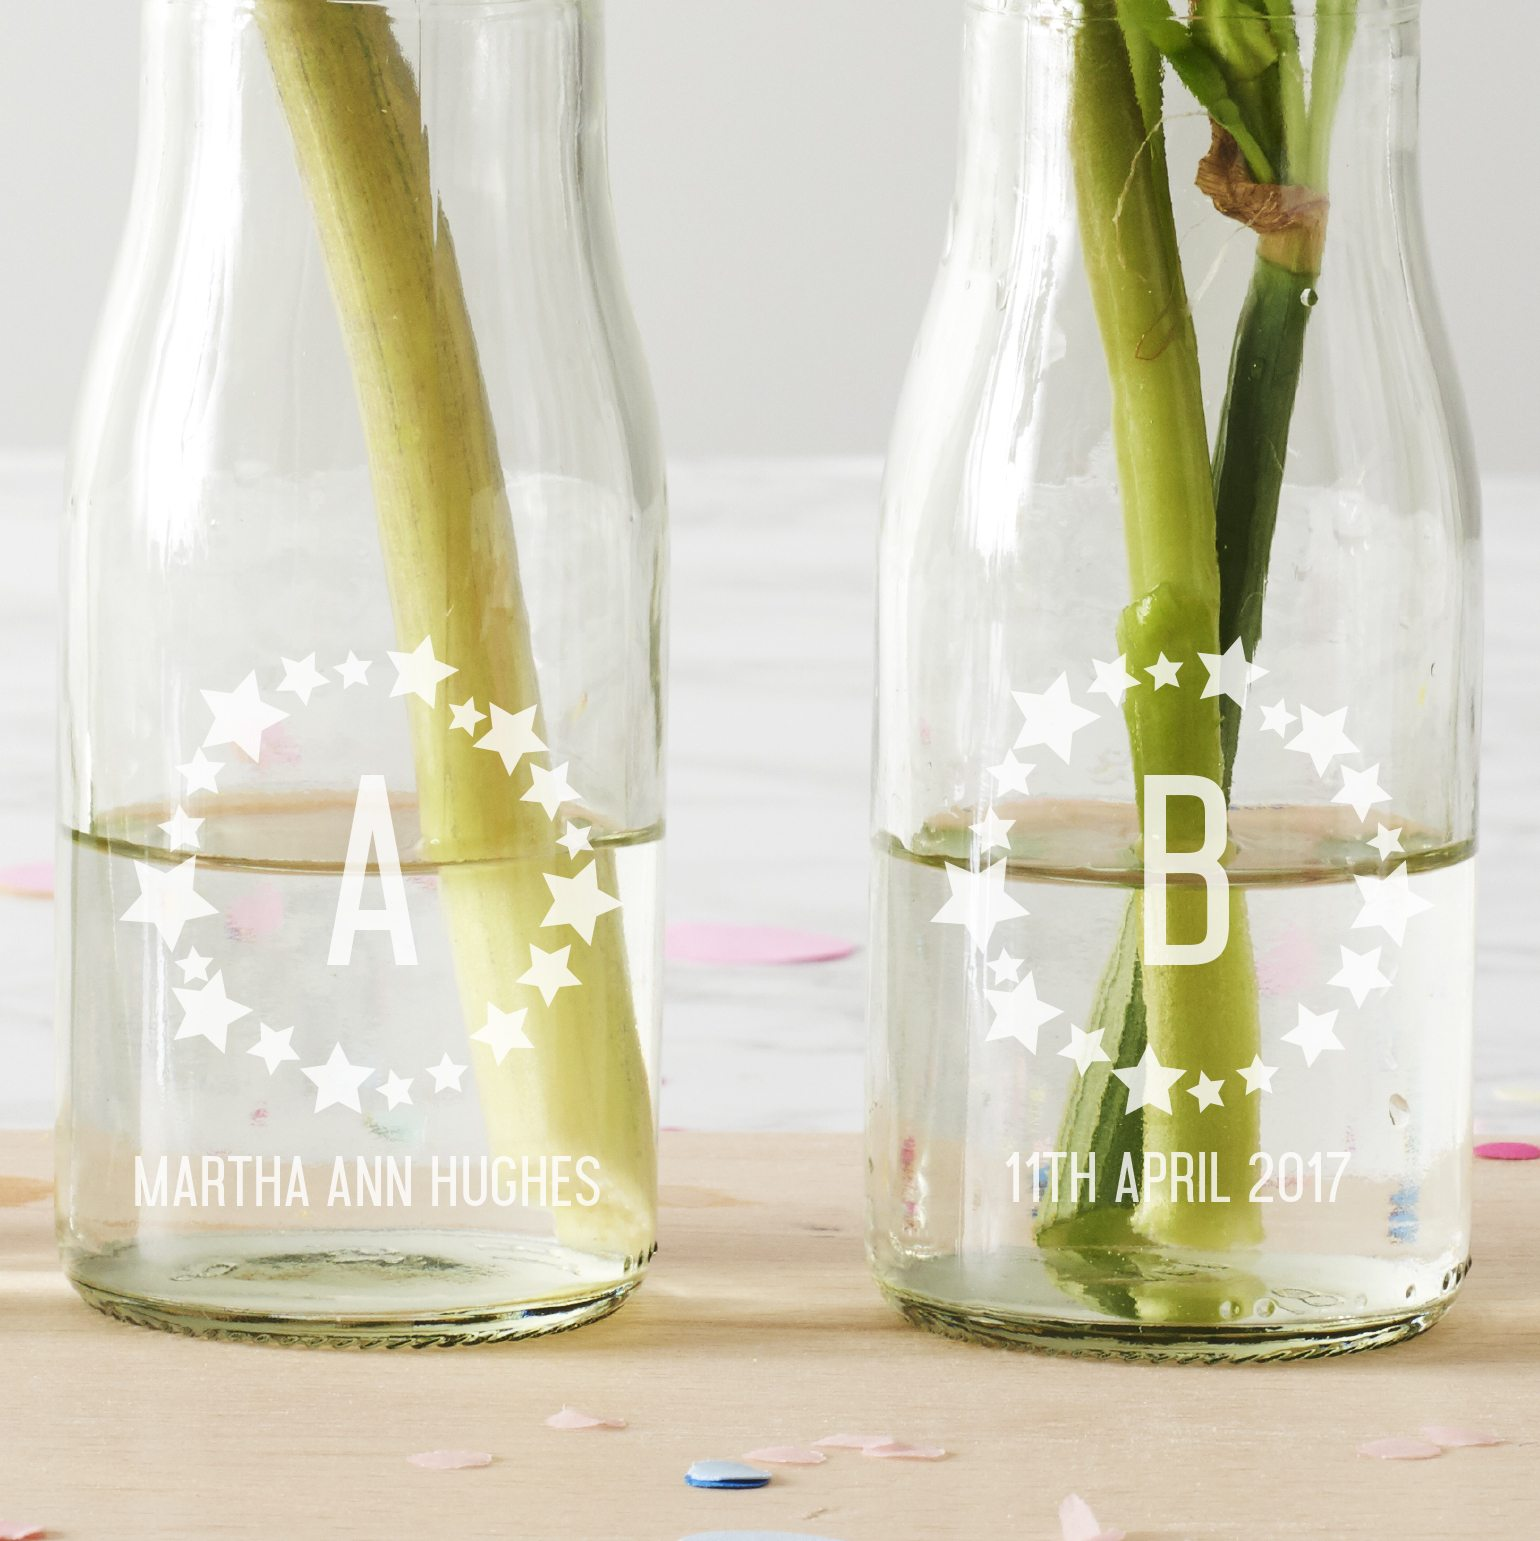 Personalised 'BABY' Star Bottle Vases